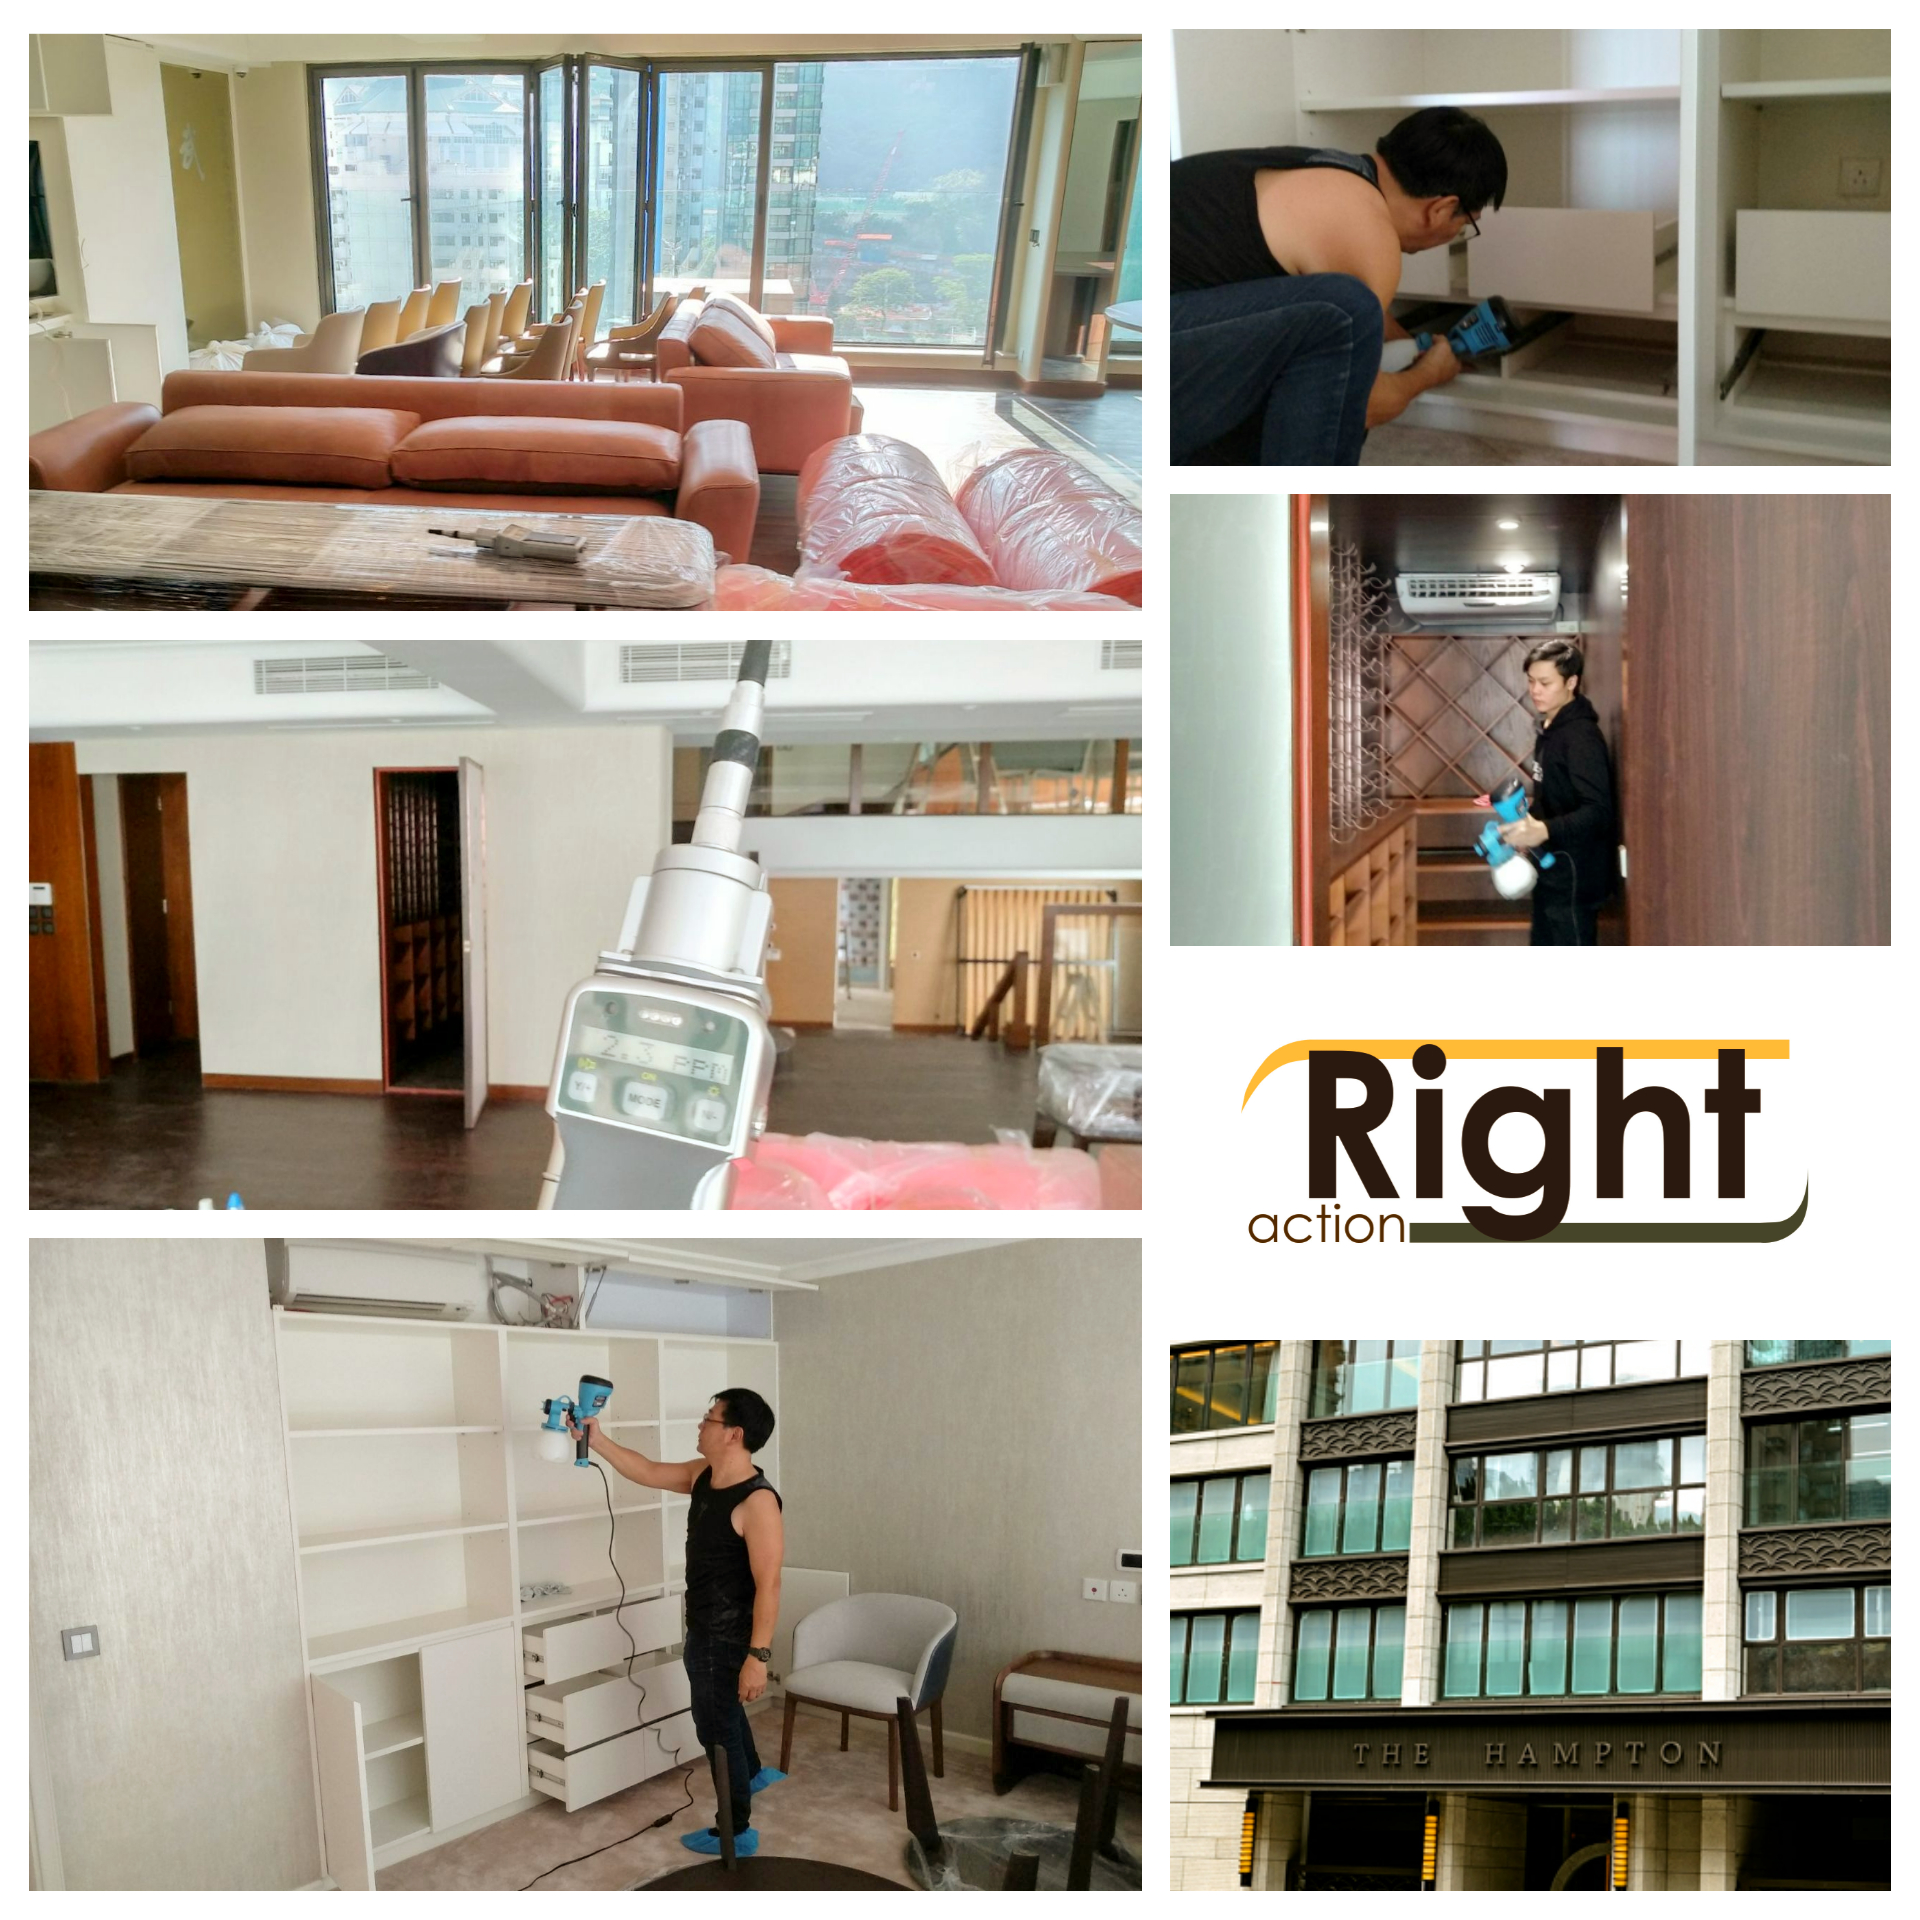 RIGHT ACTION_THE HAMPTON 複式